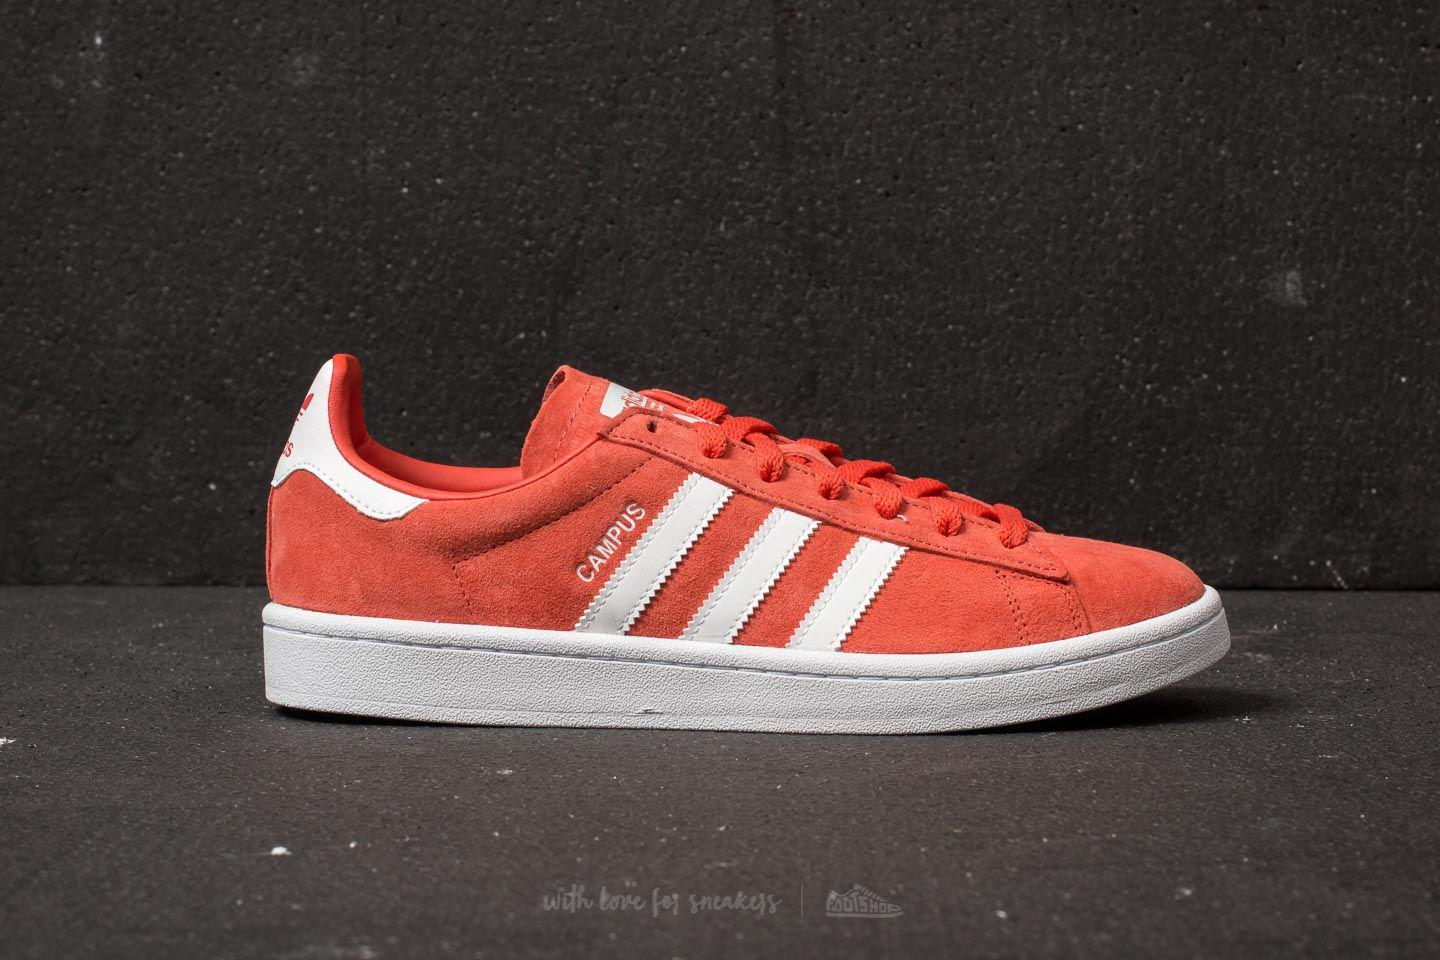 new concept 7ddc4 dcf61 Lyst - adidas Originals Adidas Campus Trace Scarlet Ftw Whit